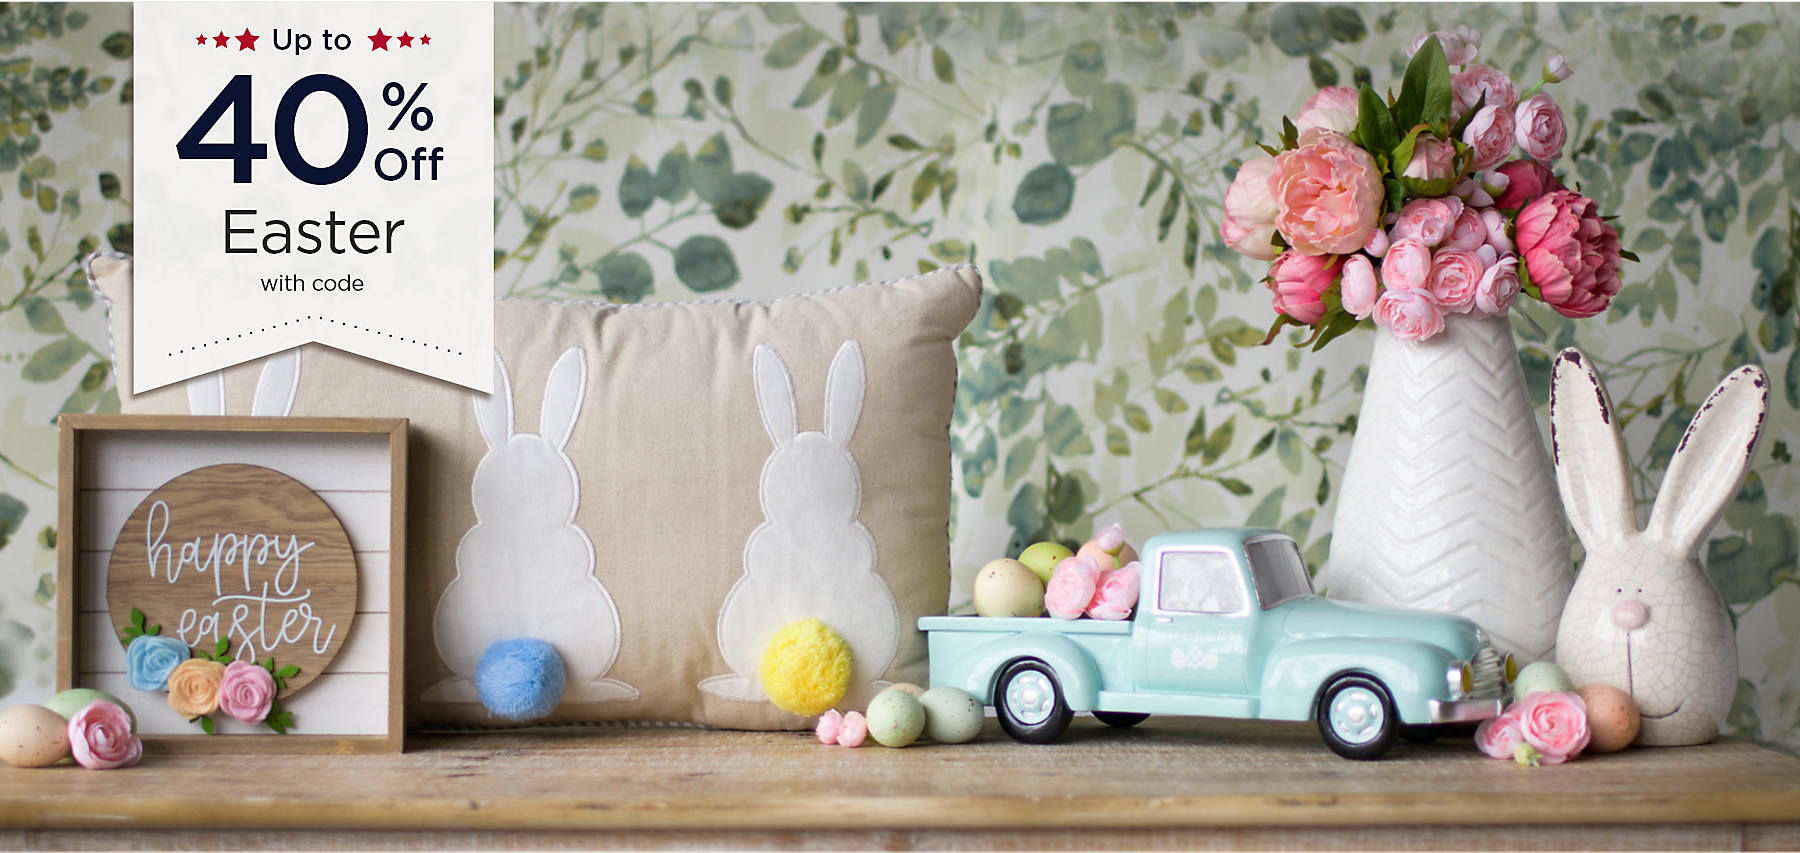 Up to 40% Off Easter with code